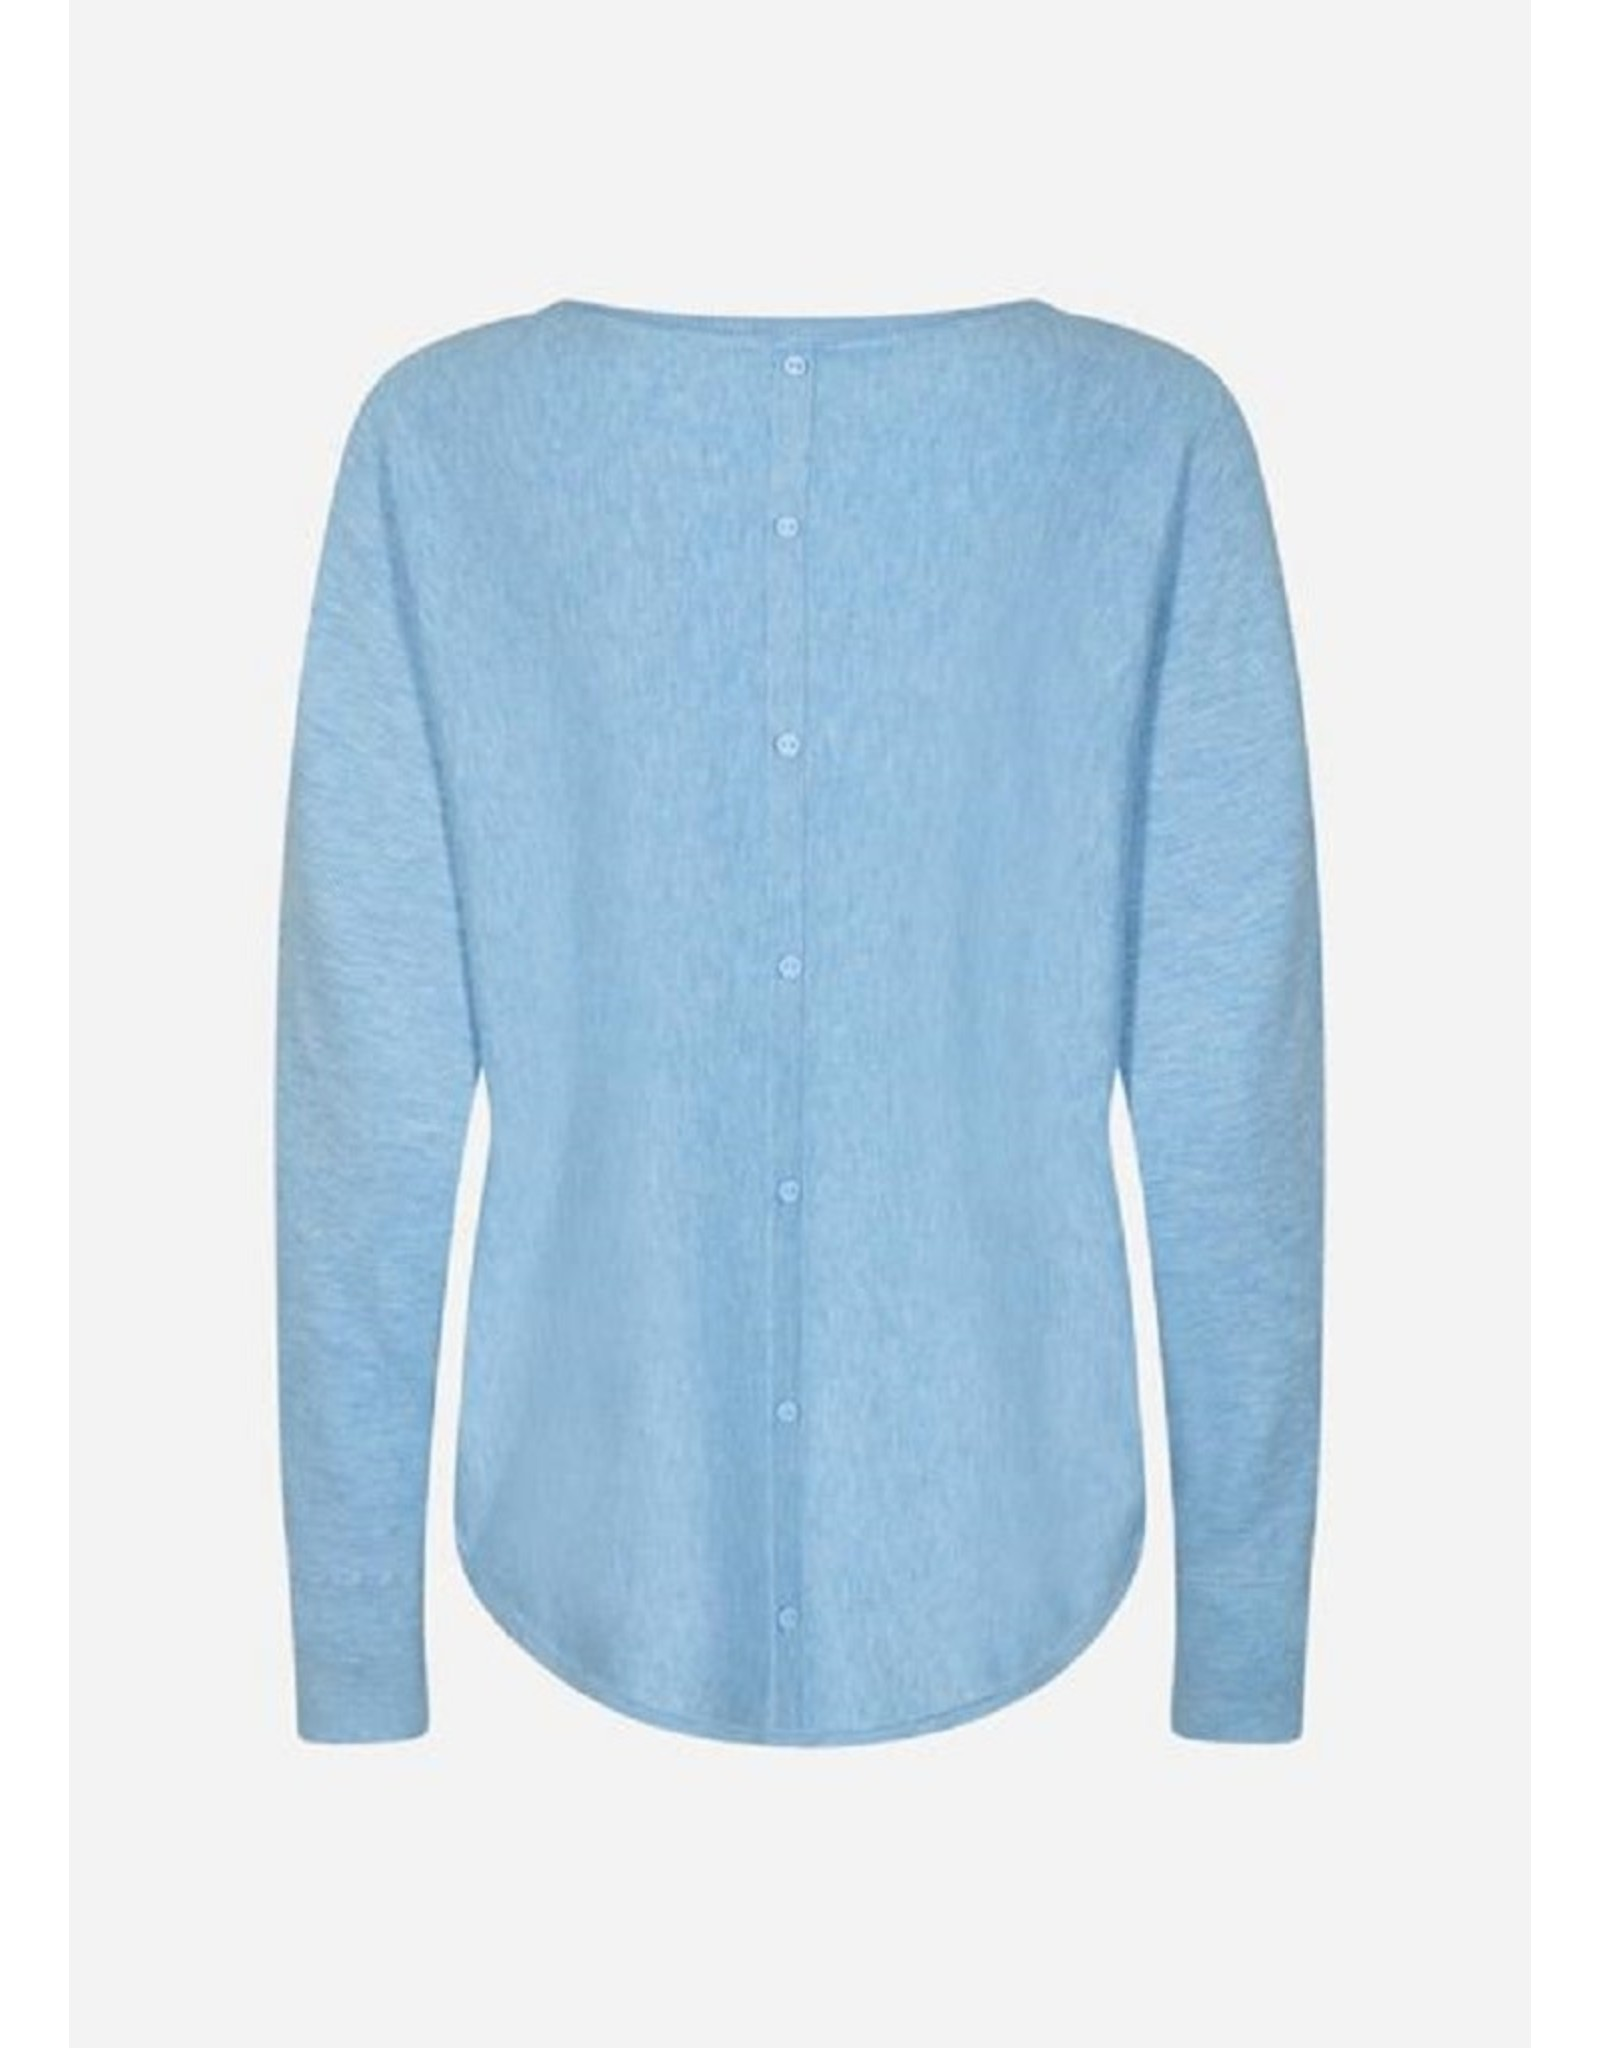 Soyaconcept Soyaconcept Dollie pullover blauw